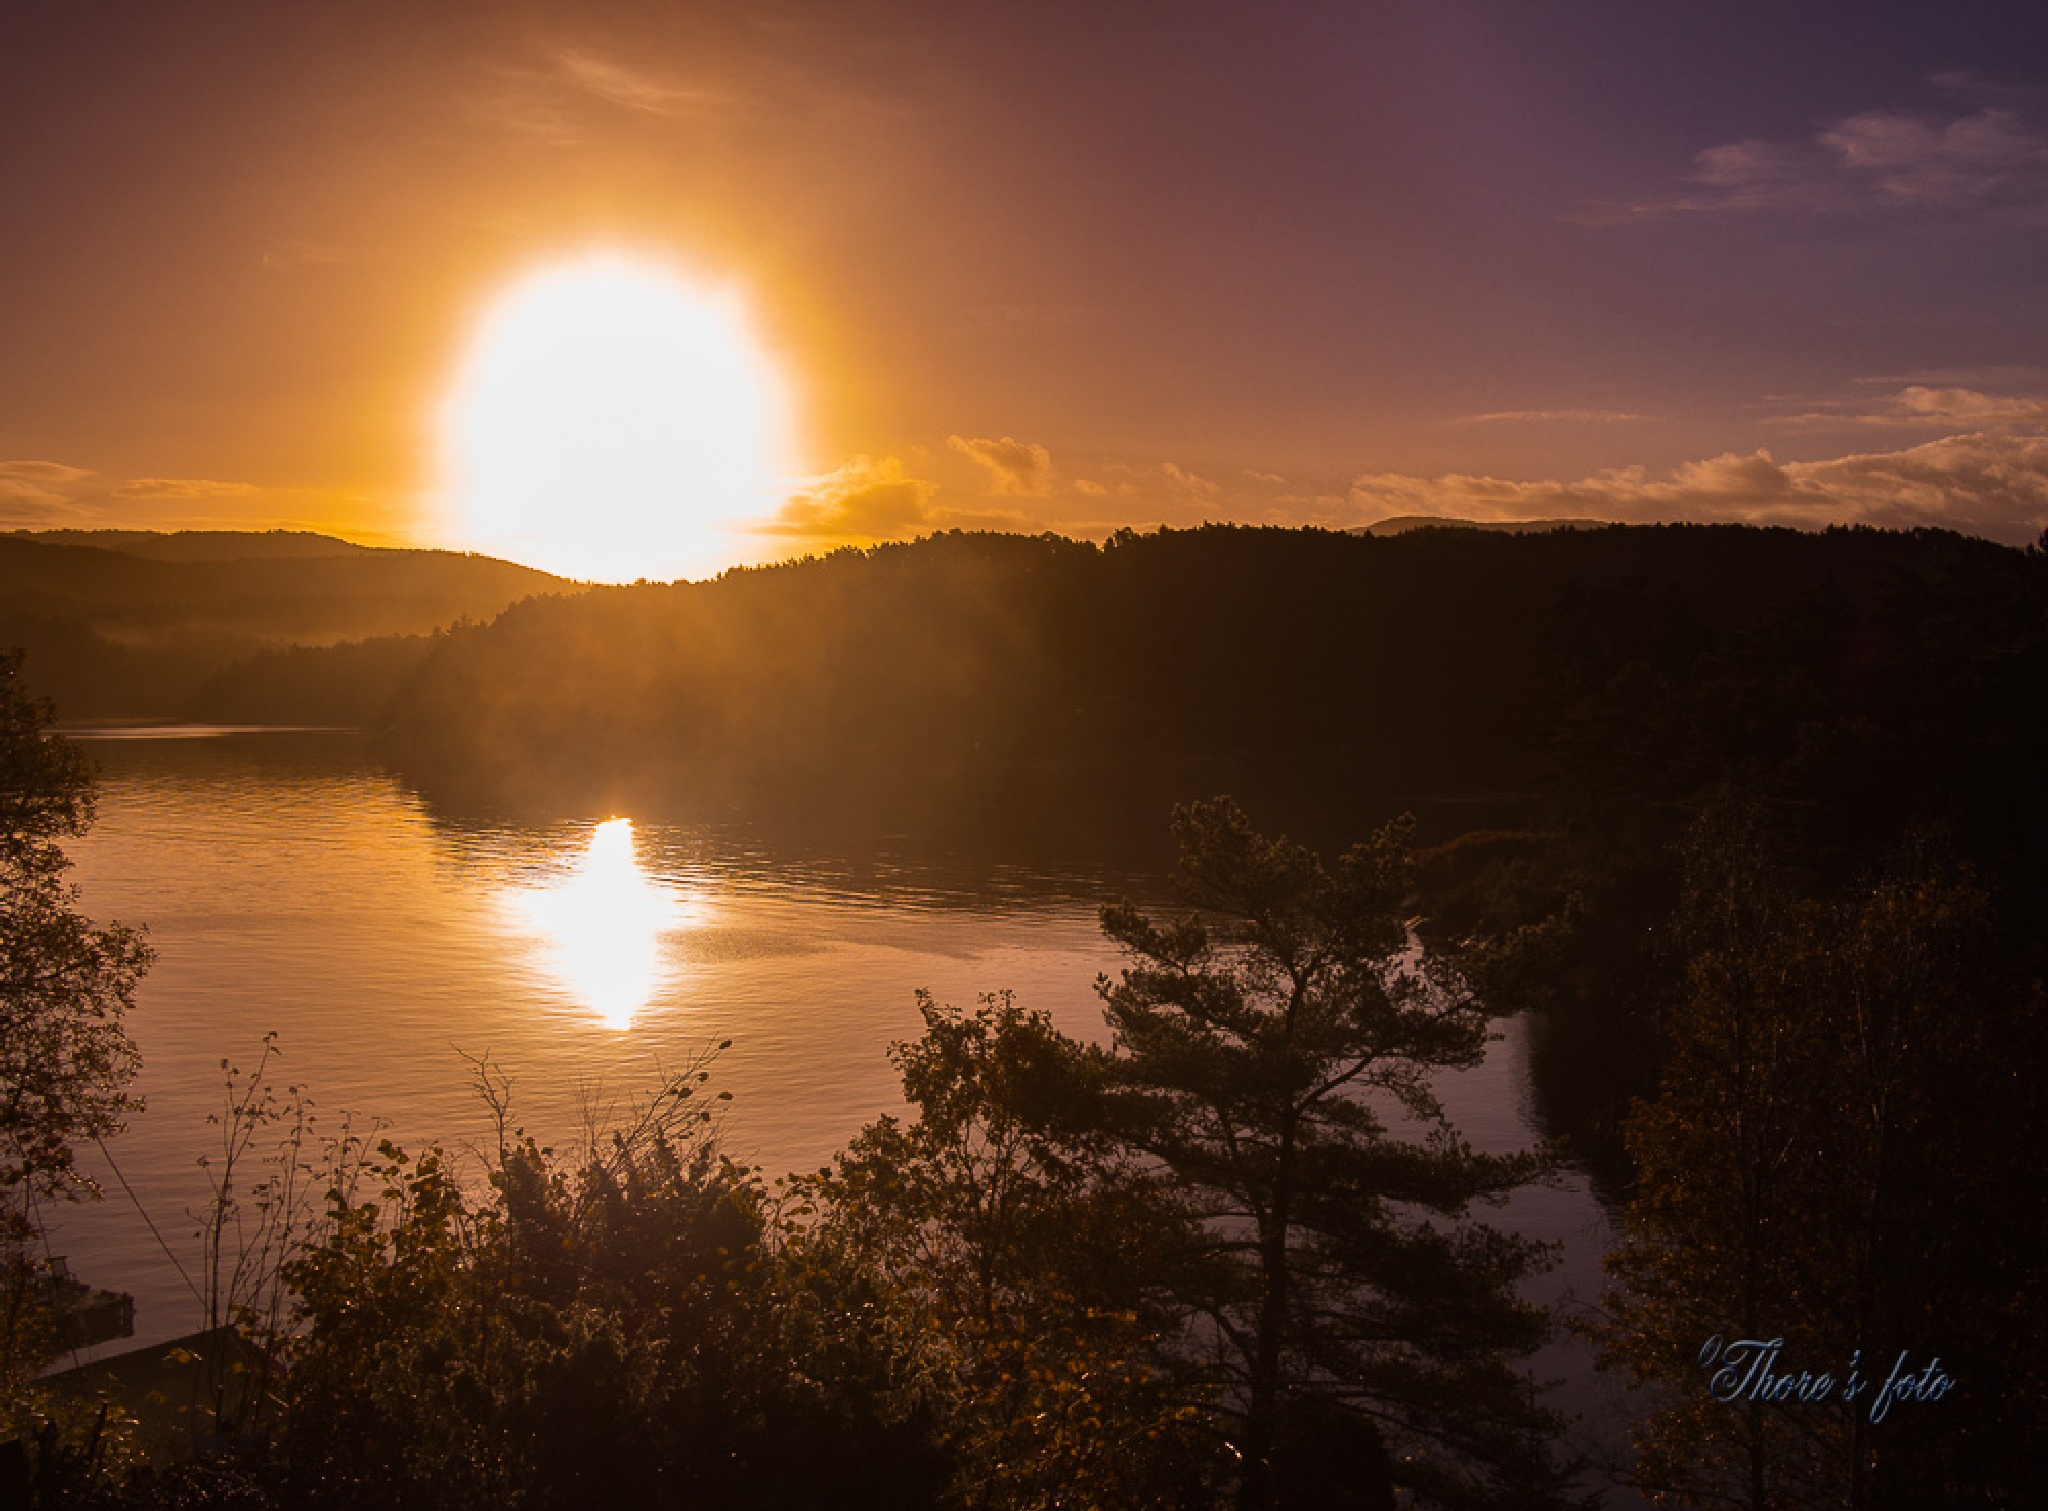 The morning sun by Thore's photo